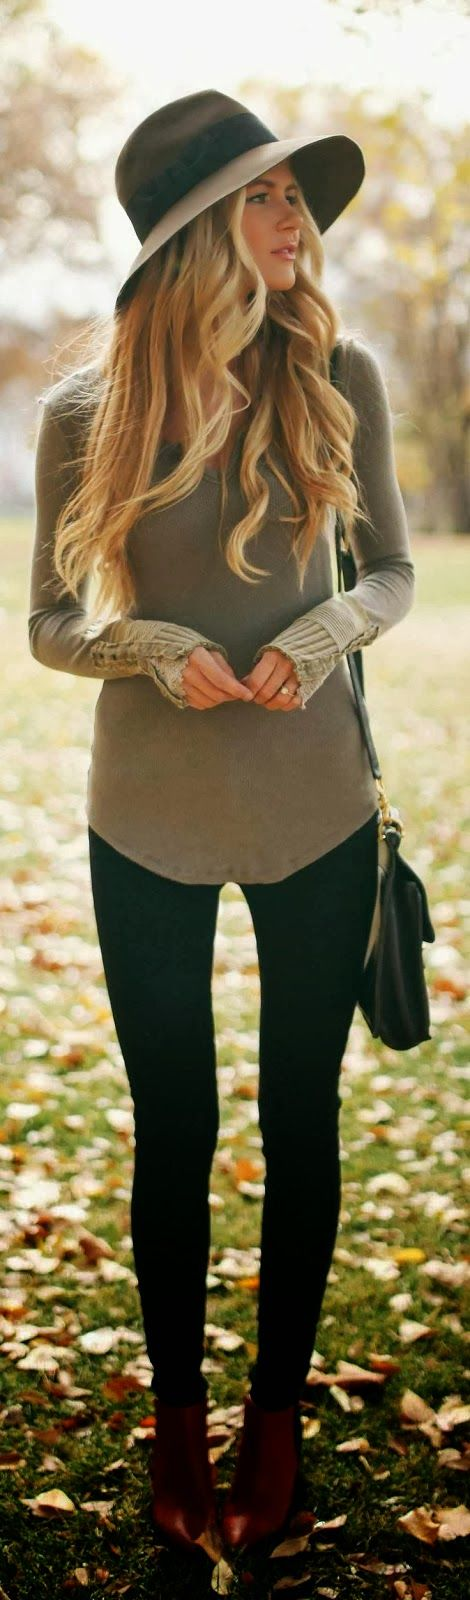 Cute Shirt With Black Leggings And Hat